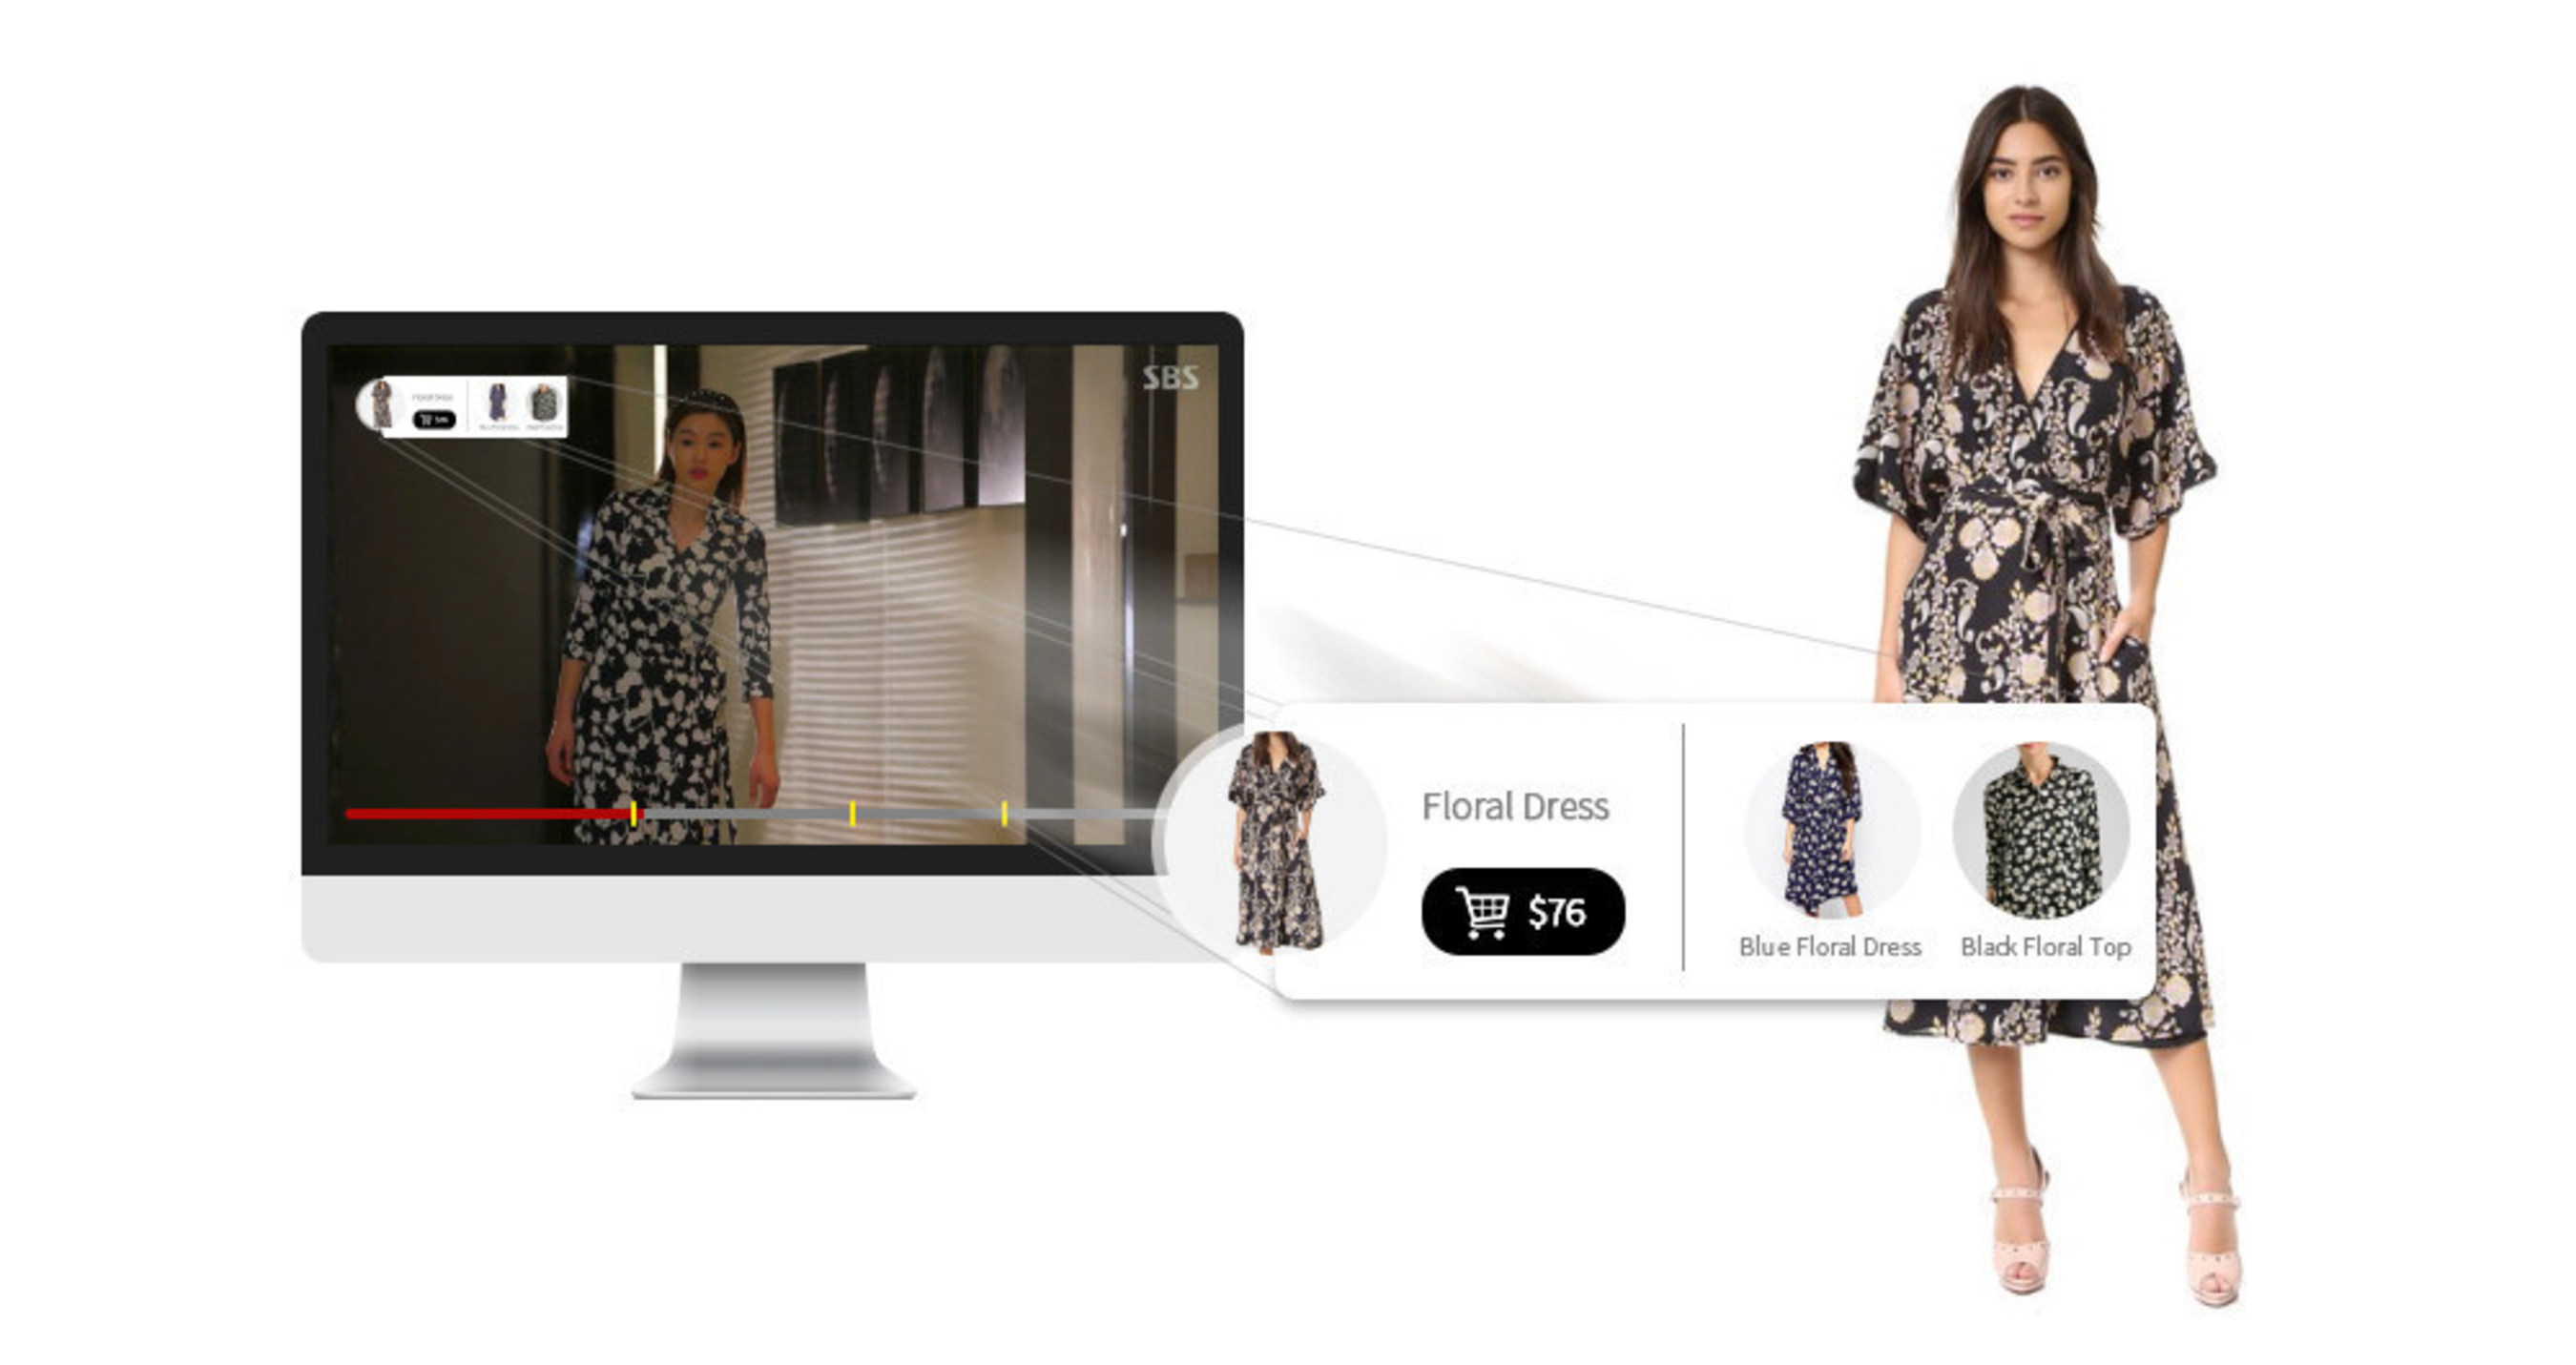 Video commerce demo by ViSenze